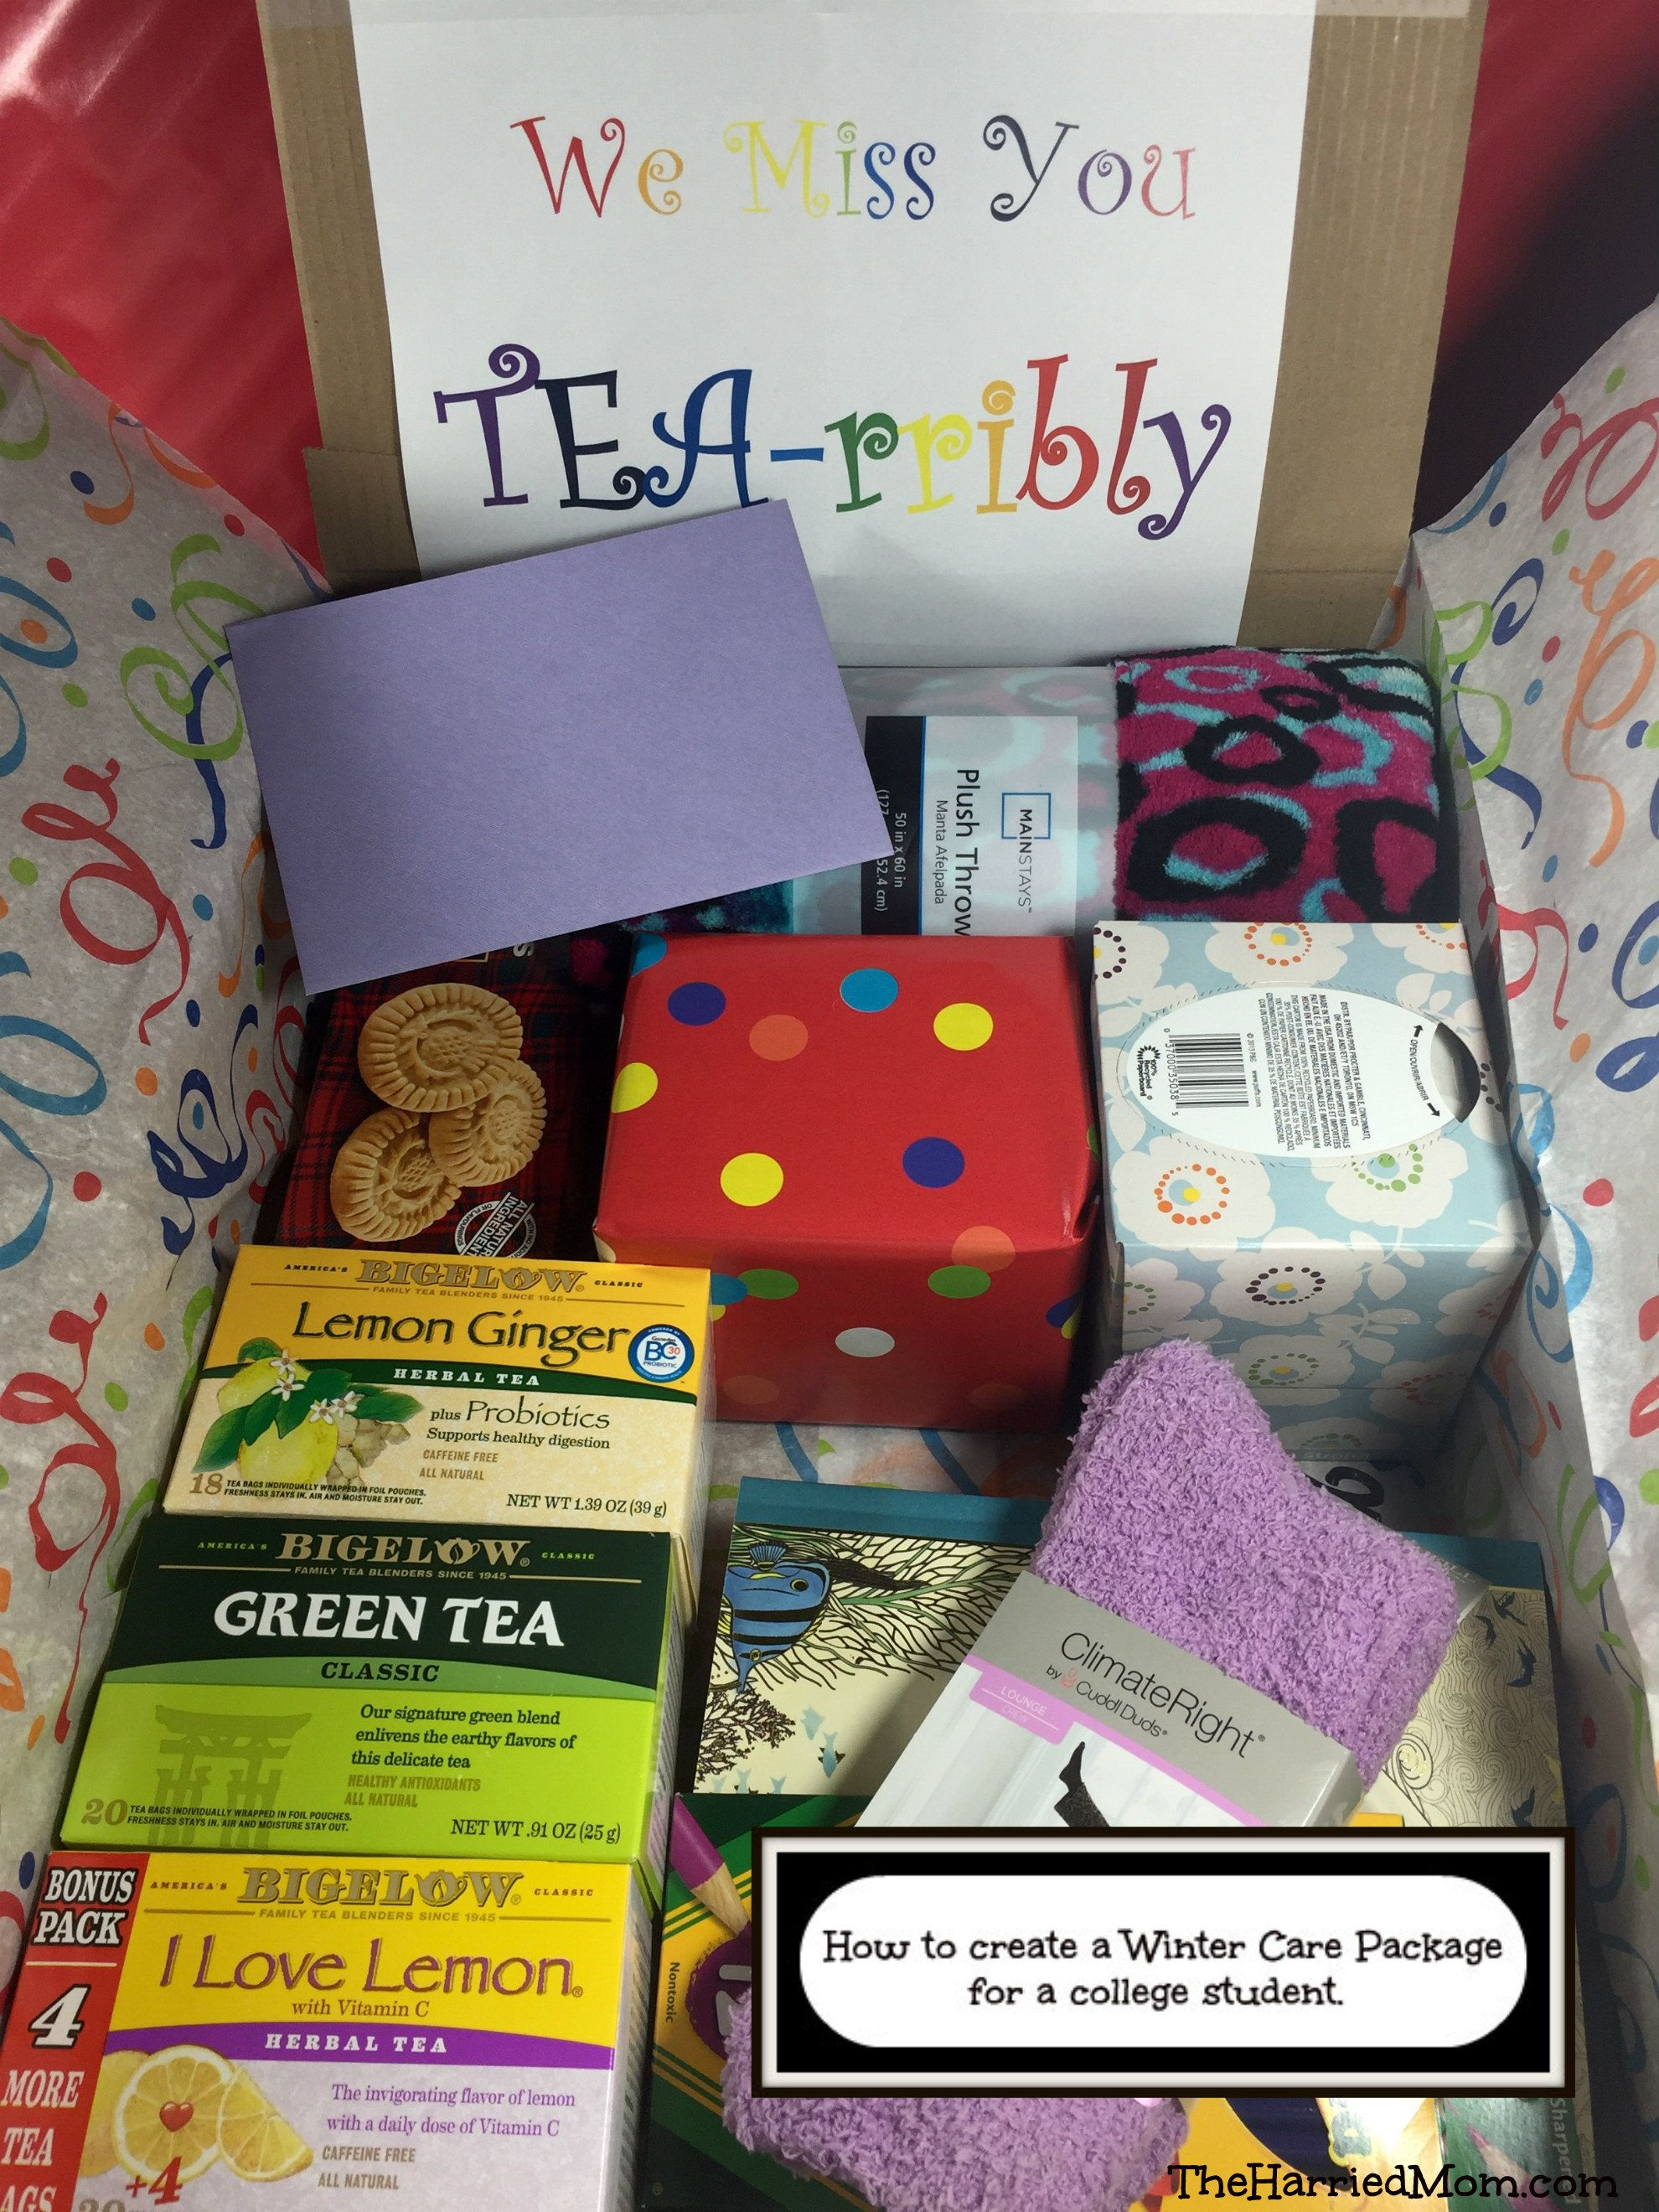 How to create a winter care package for a college student